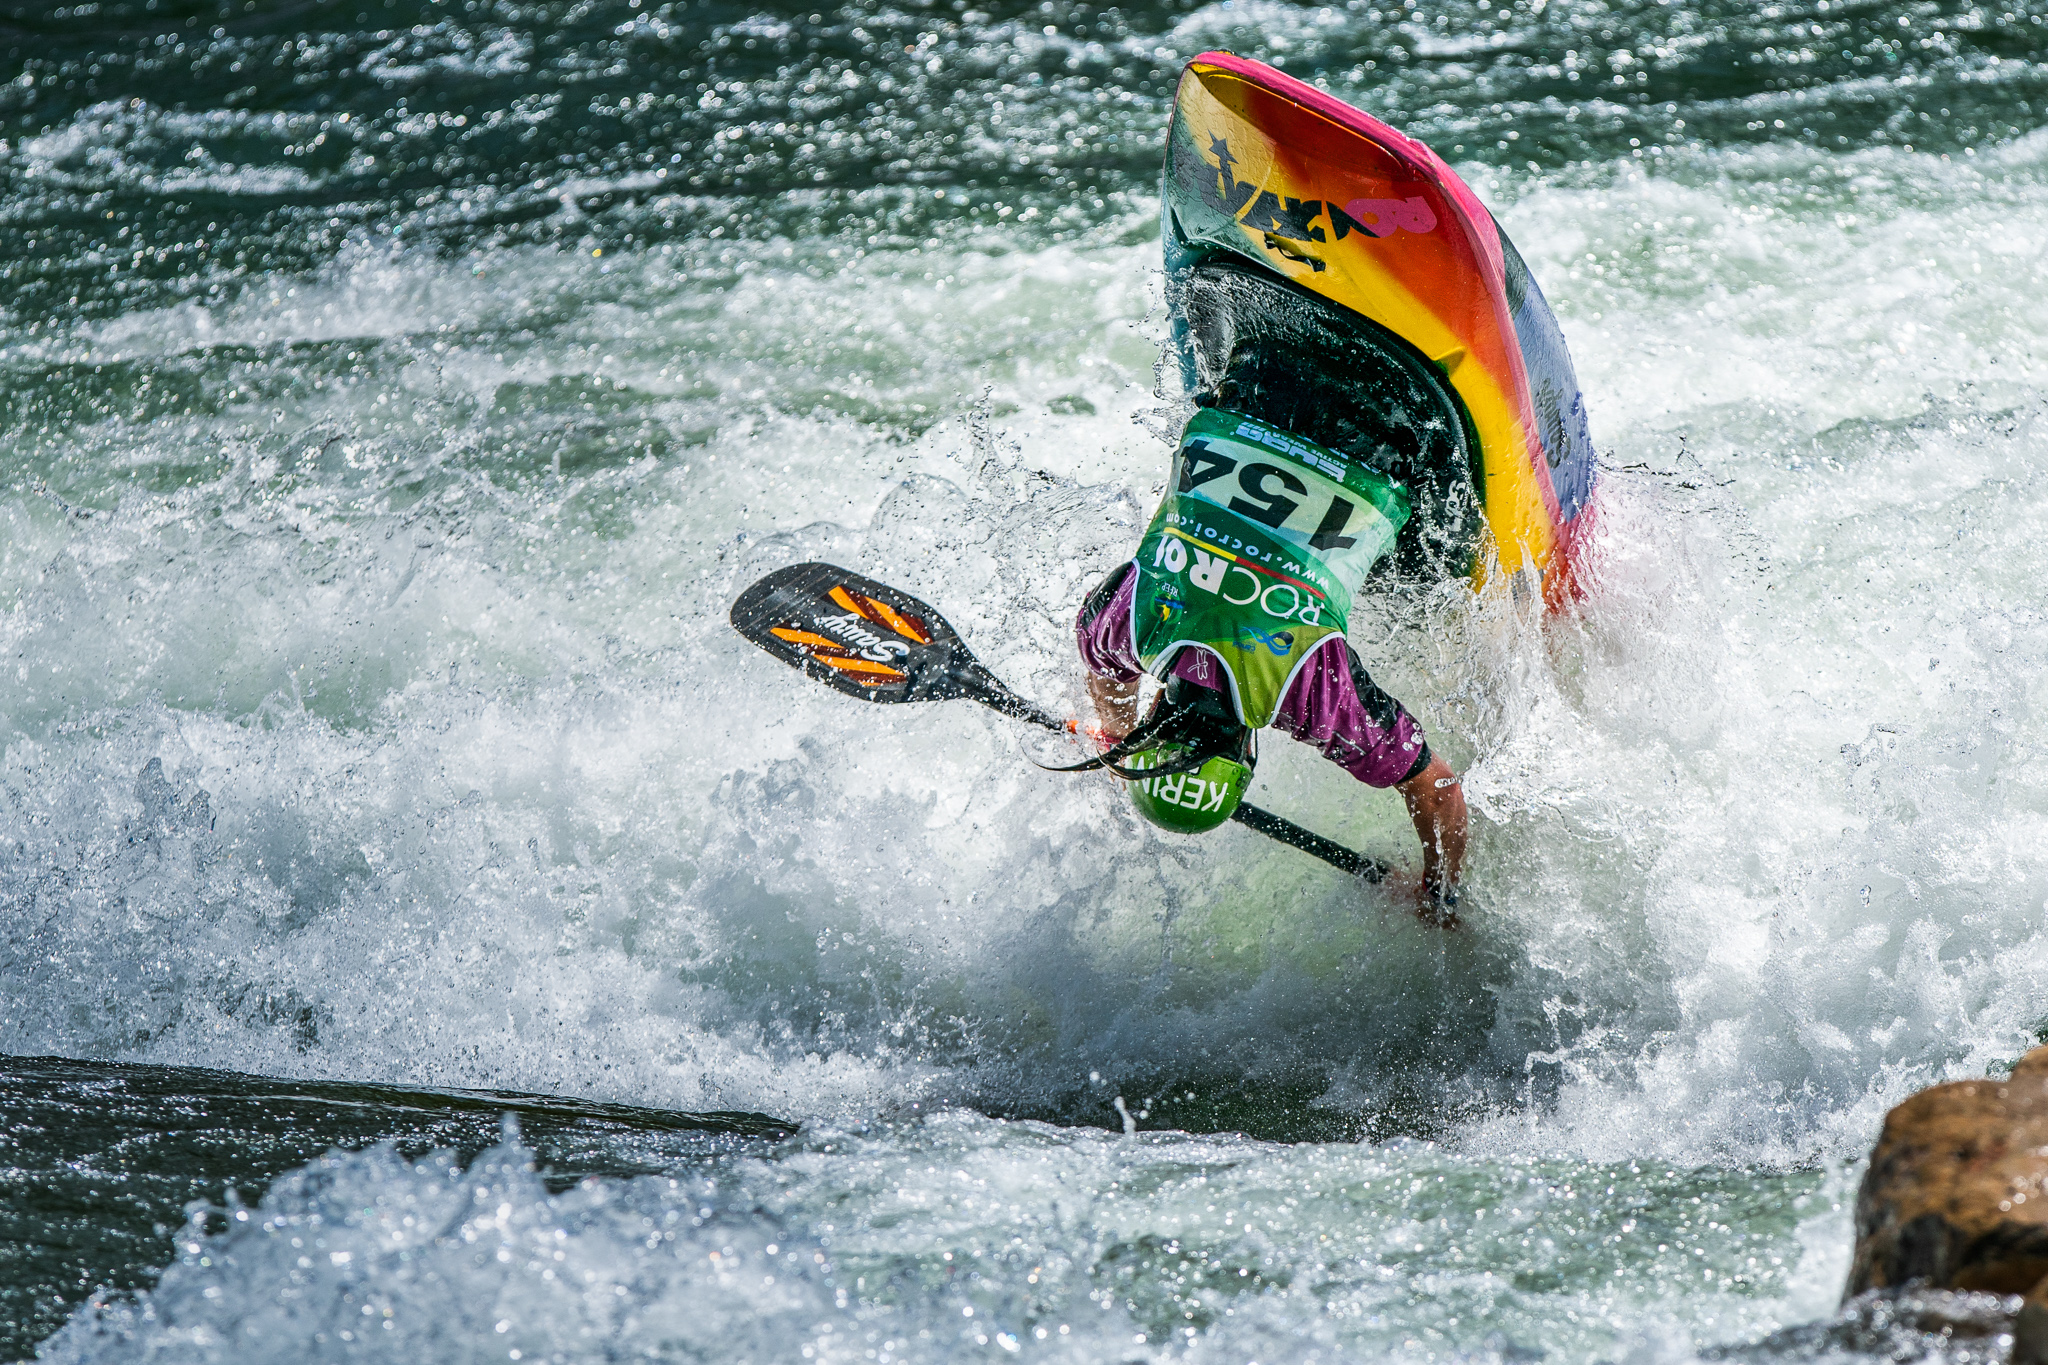 Otherwise know as the flying Kiwi, Courtney Kerin from New Zealand, lives up to her name in the women's prelim rounds